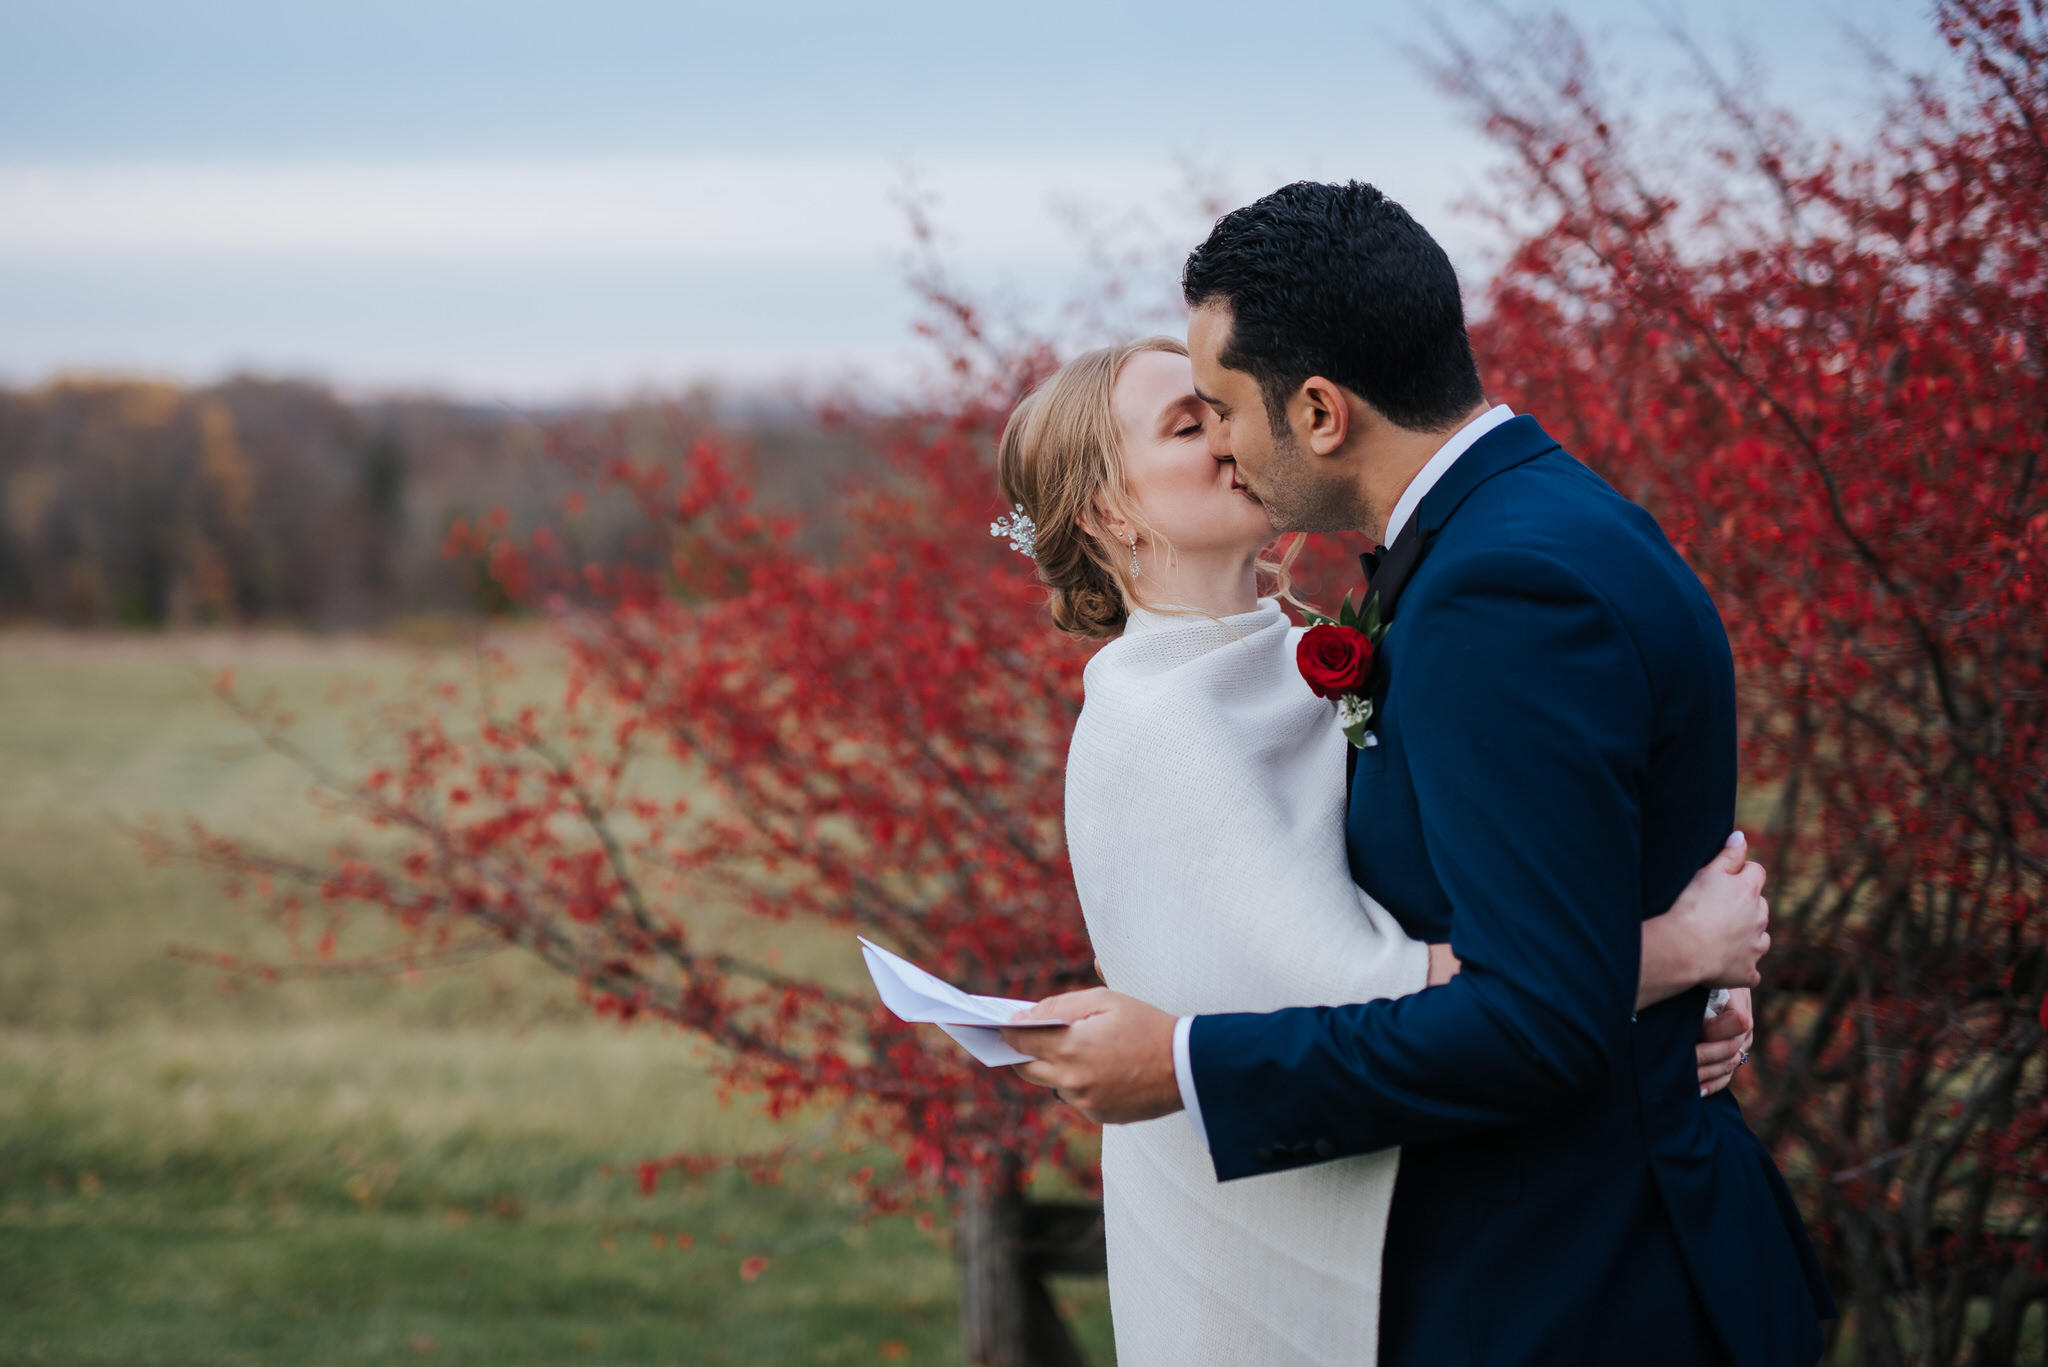 Waterstone Estate & Farms Wedding - reading vows